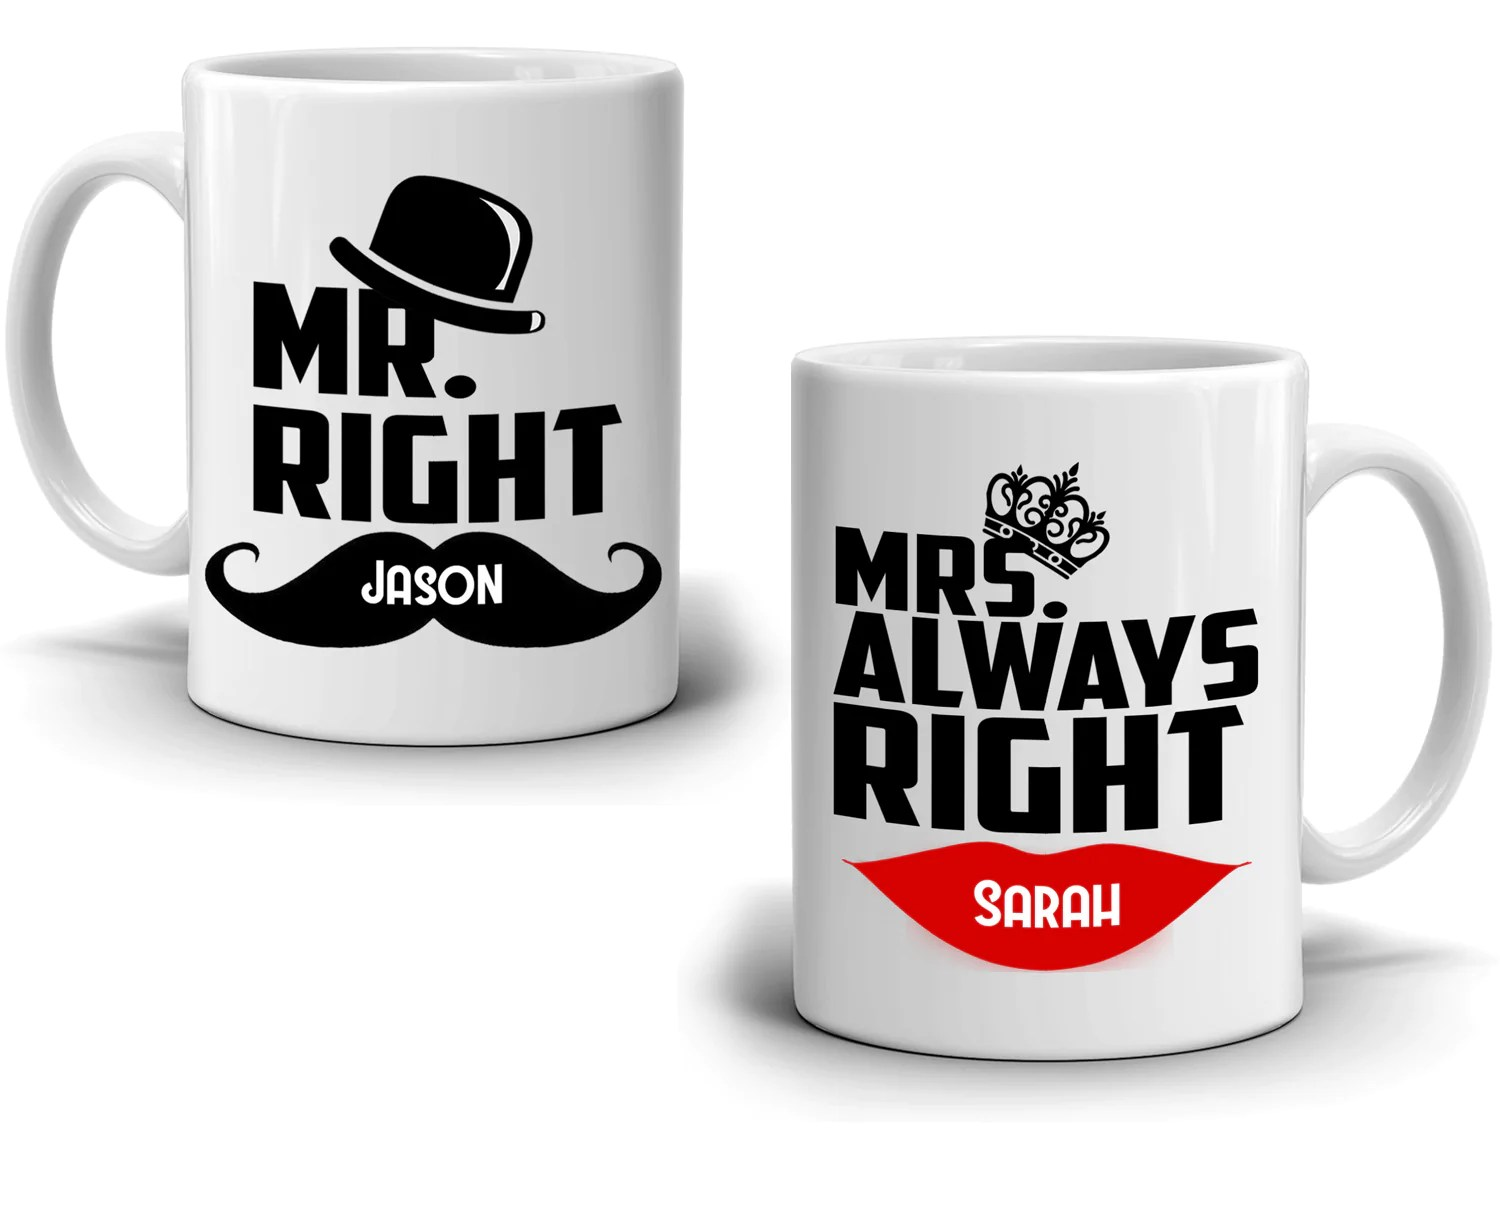 Enchanting Mrs Always Right Coffee Mug Set Mr Right Mrs Always Right Coffee Mug Set Stir Coffee Mug Sets Amazon Coffee Mug Sets Nz Mr Right furniture Coffe Mug Sets